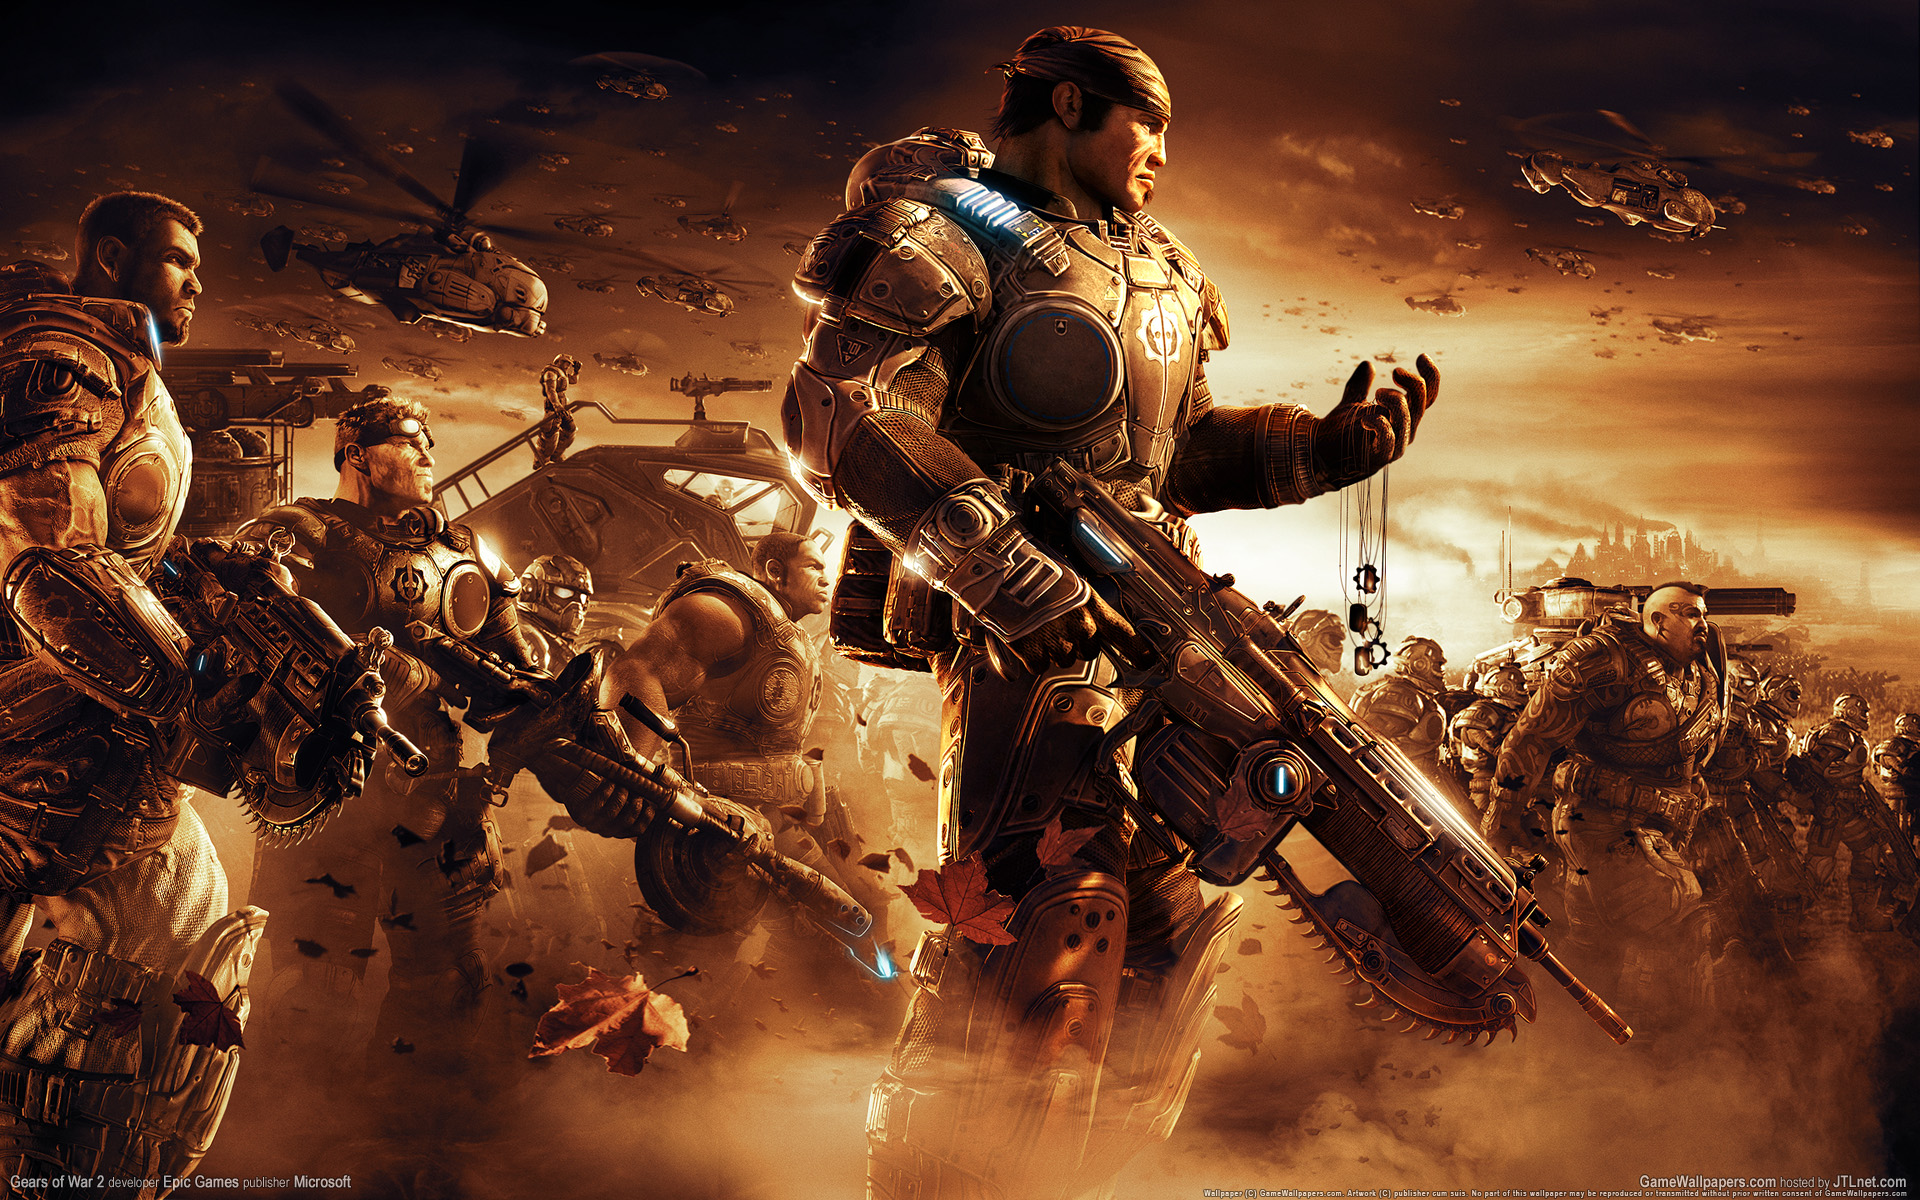 Cool Gears of War Wallpaper 28275 1680x1050 px